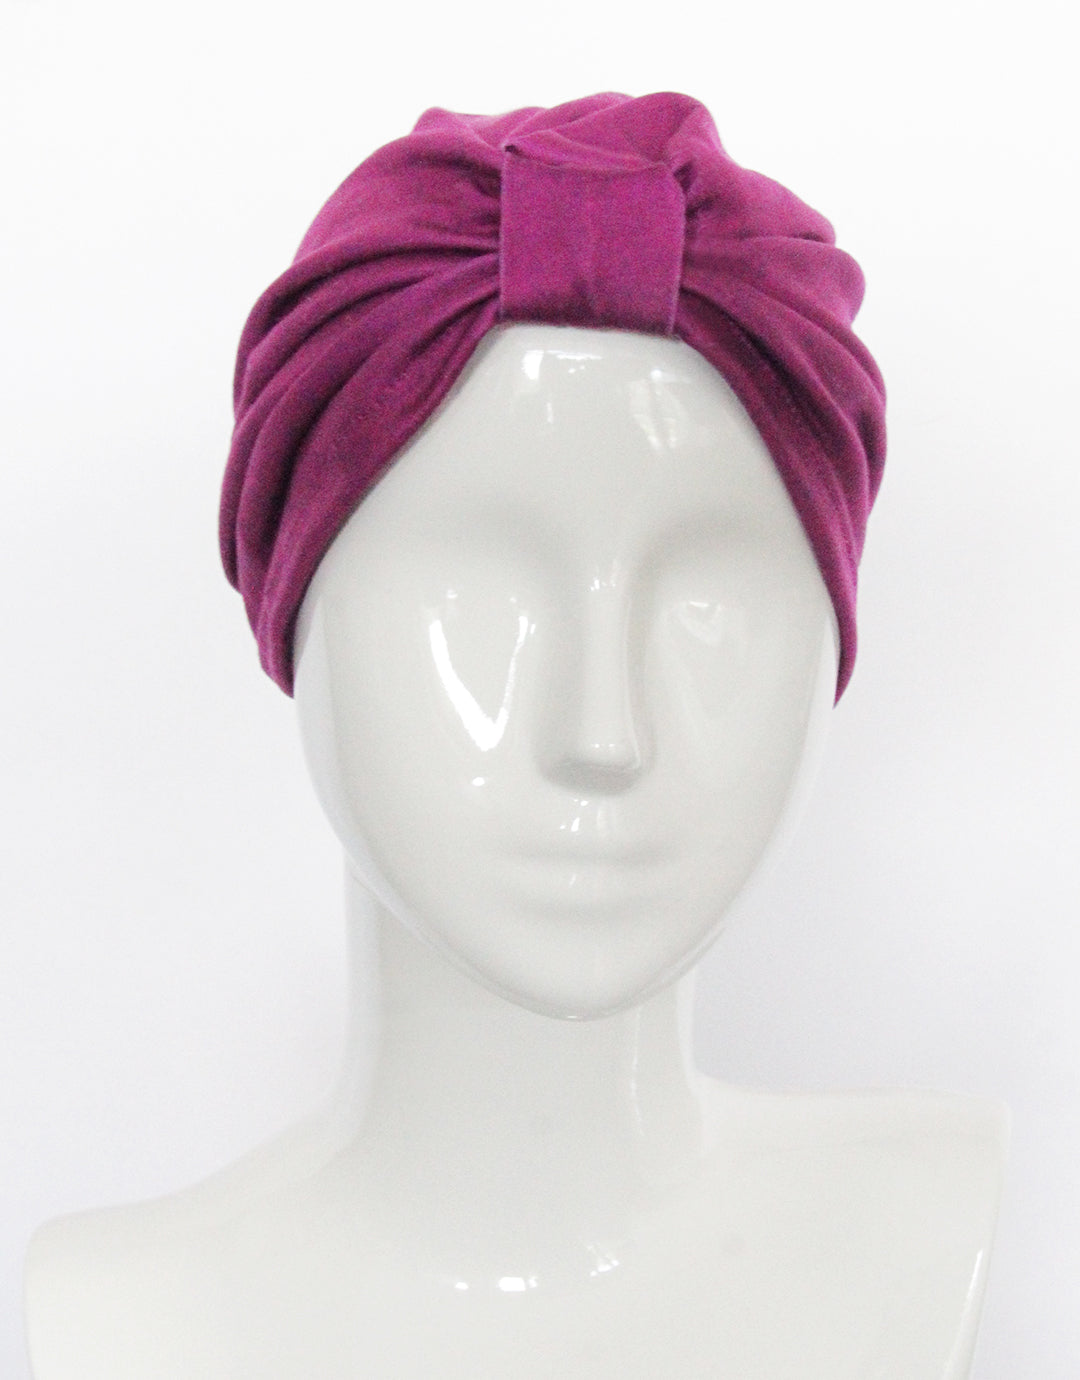 BANDED Women's Full Coverage Headwraps + Hair Accessories - Radiant Sky - Fashion Turban